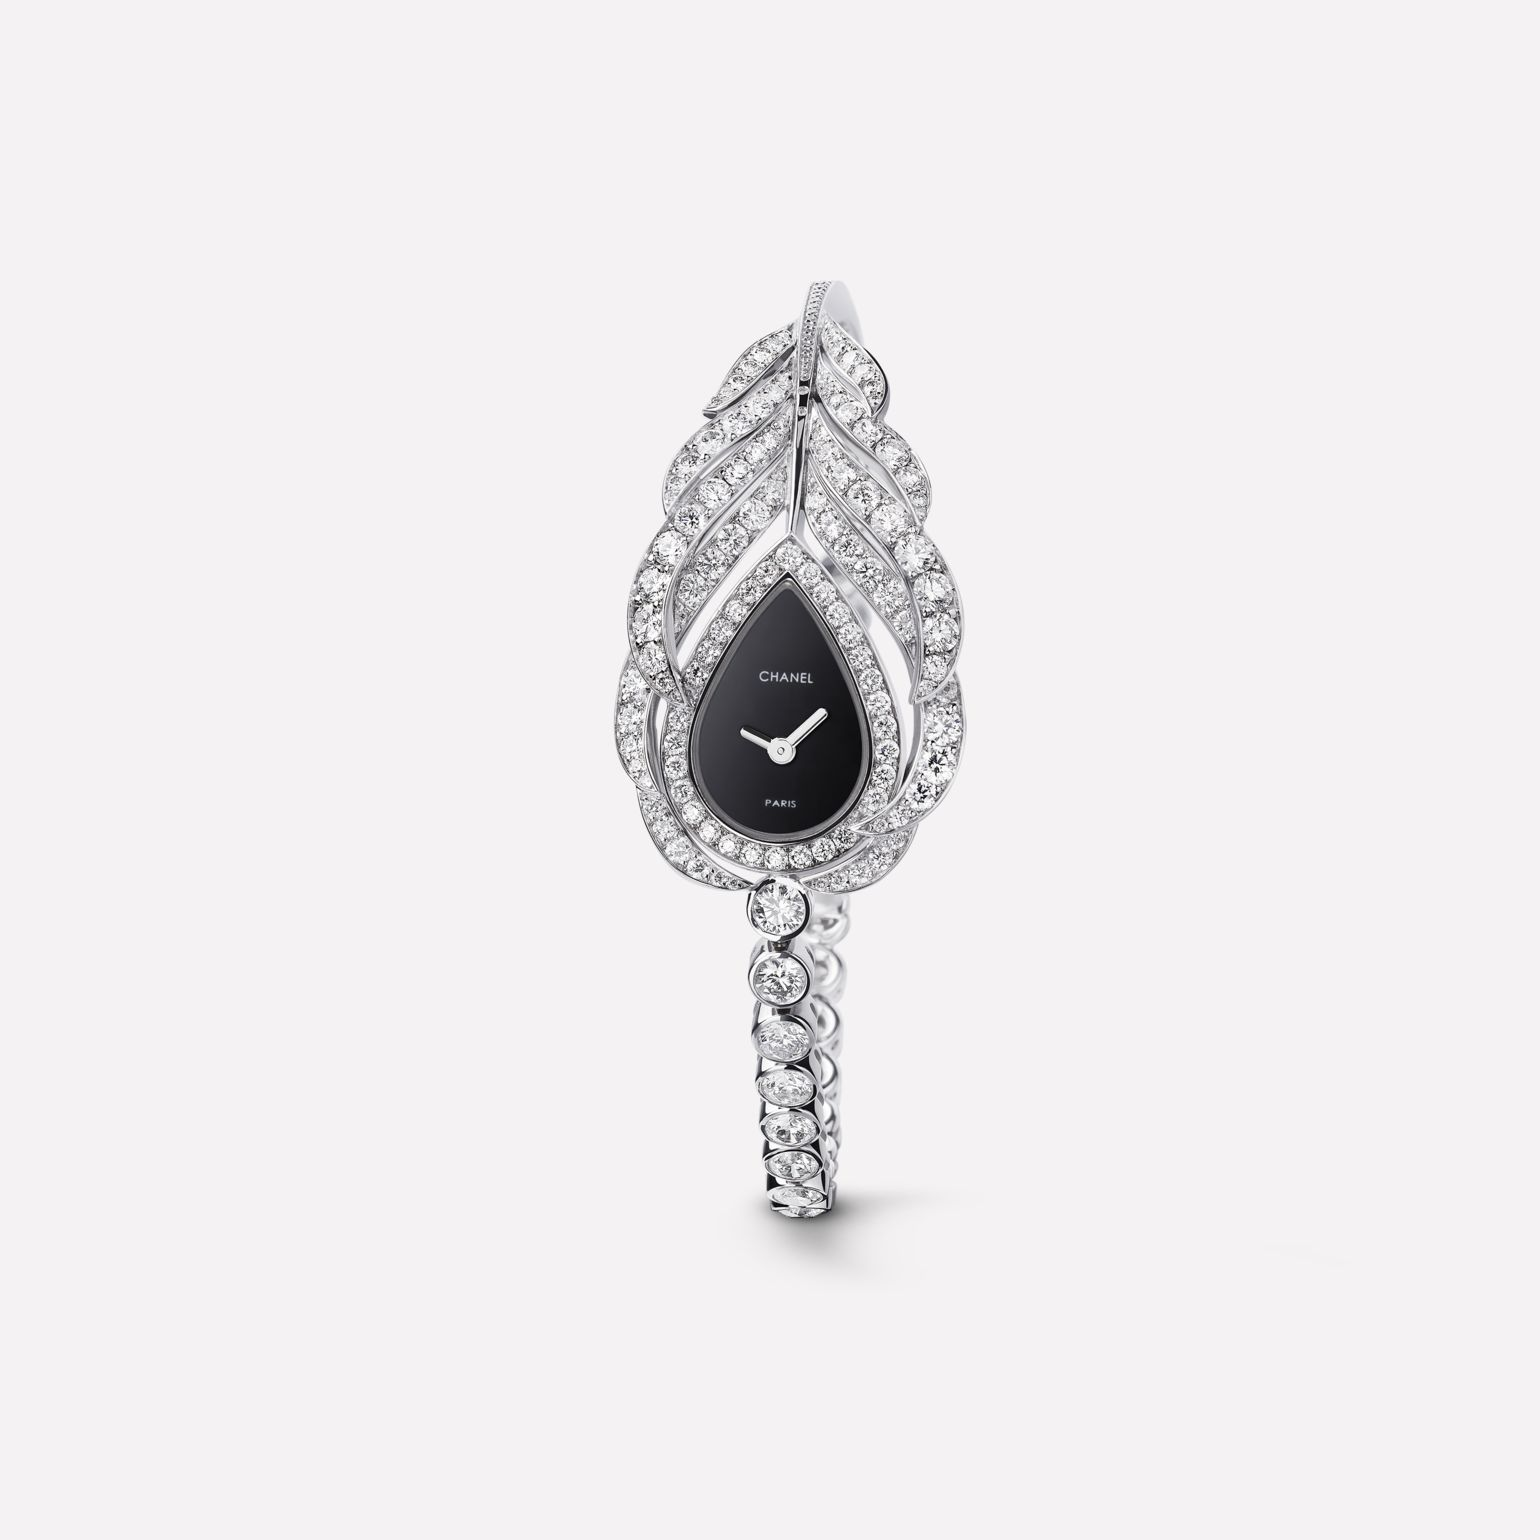 Plume de CHANEL Jewelry Watch Plume motif in 18K white gold and diamonds with diamond bracelet